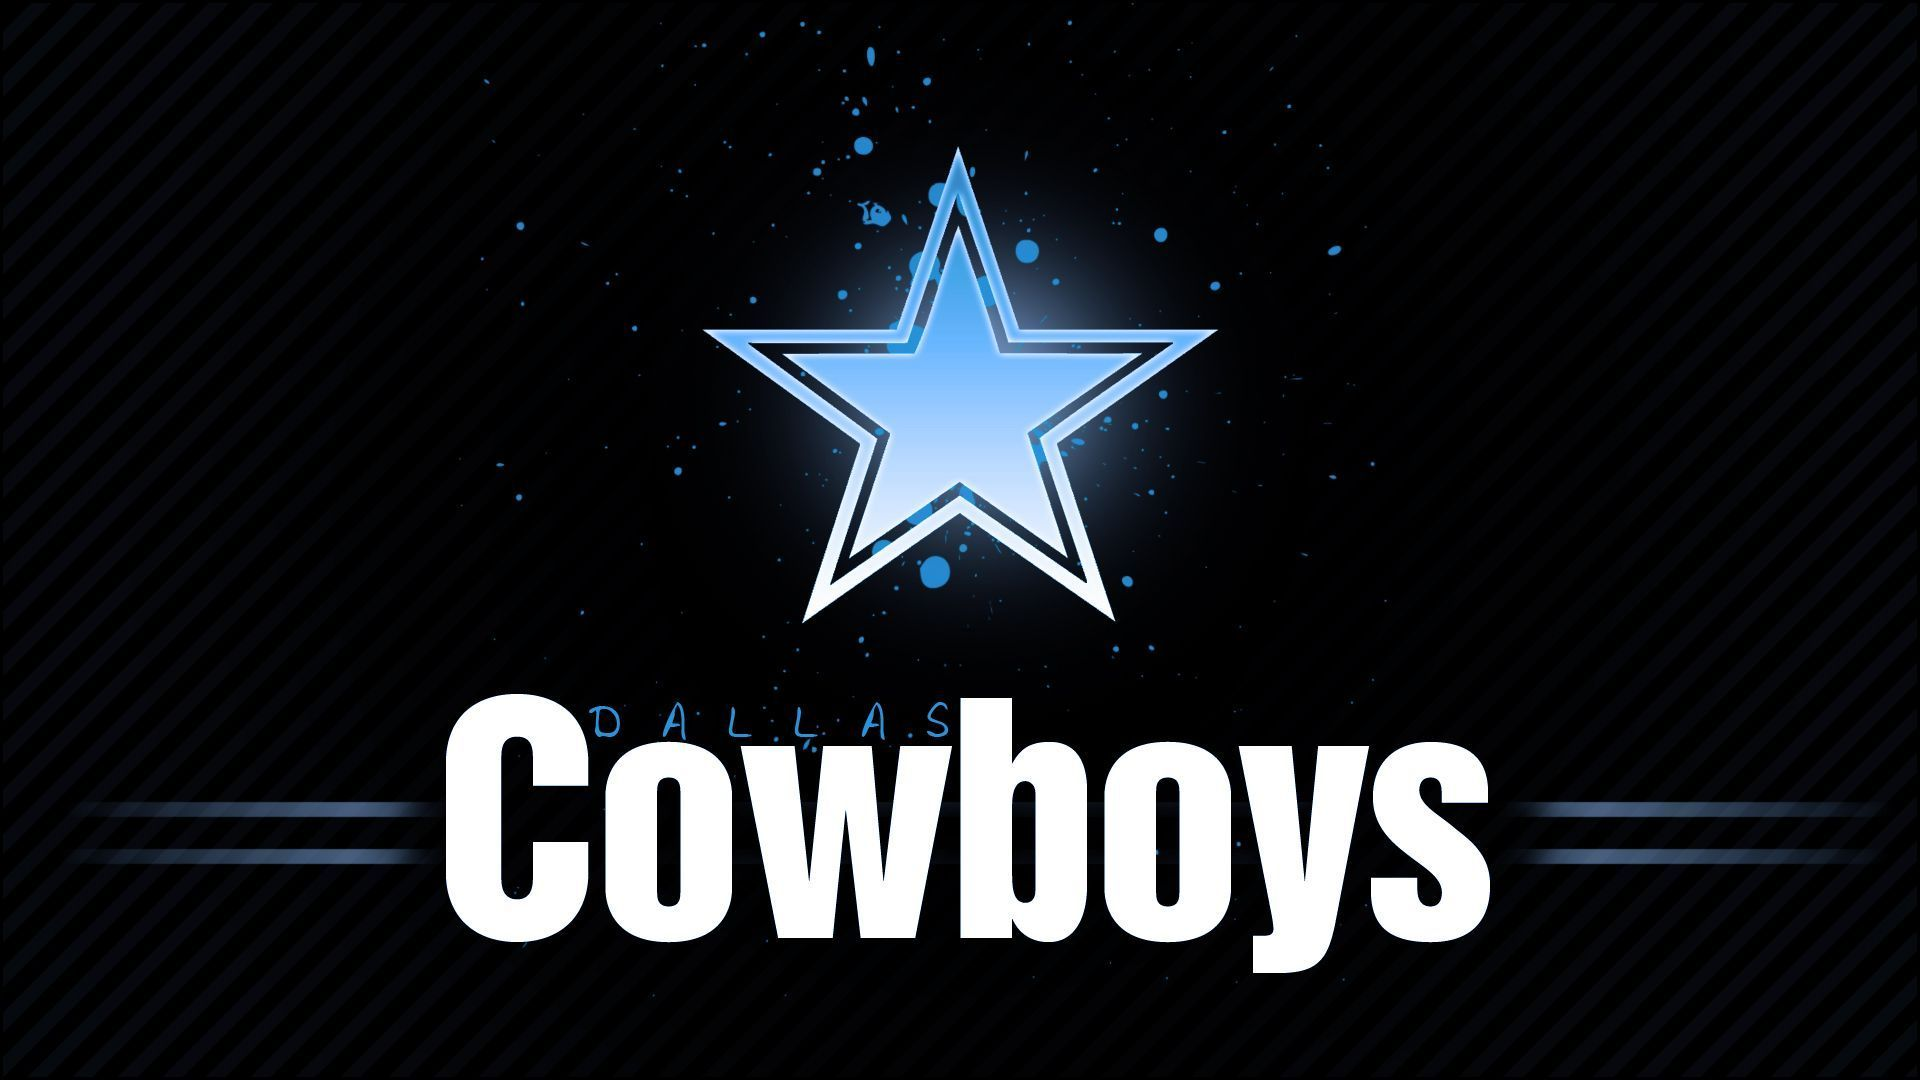 D dallas cowboys live wallpaper for android free download apps 1920 d dallas cowboys live wallpaper for android free download apps 19201080 dallas cowboys live voltagebd Images